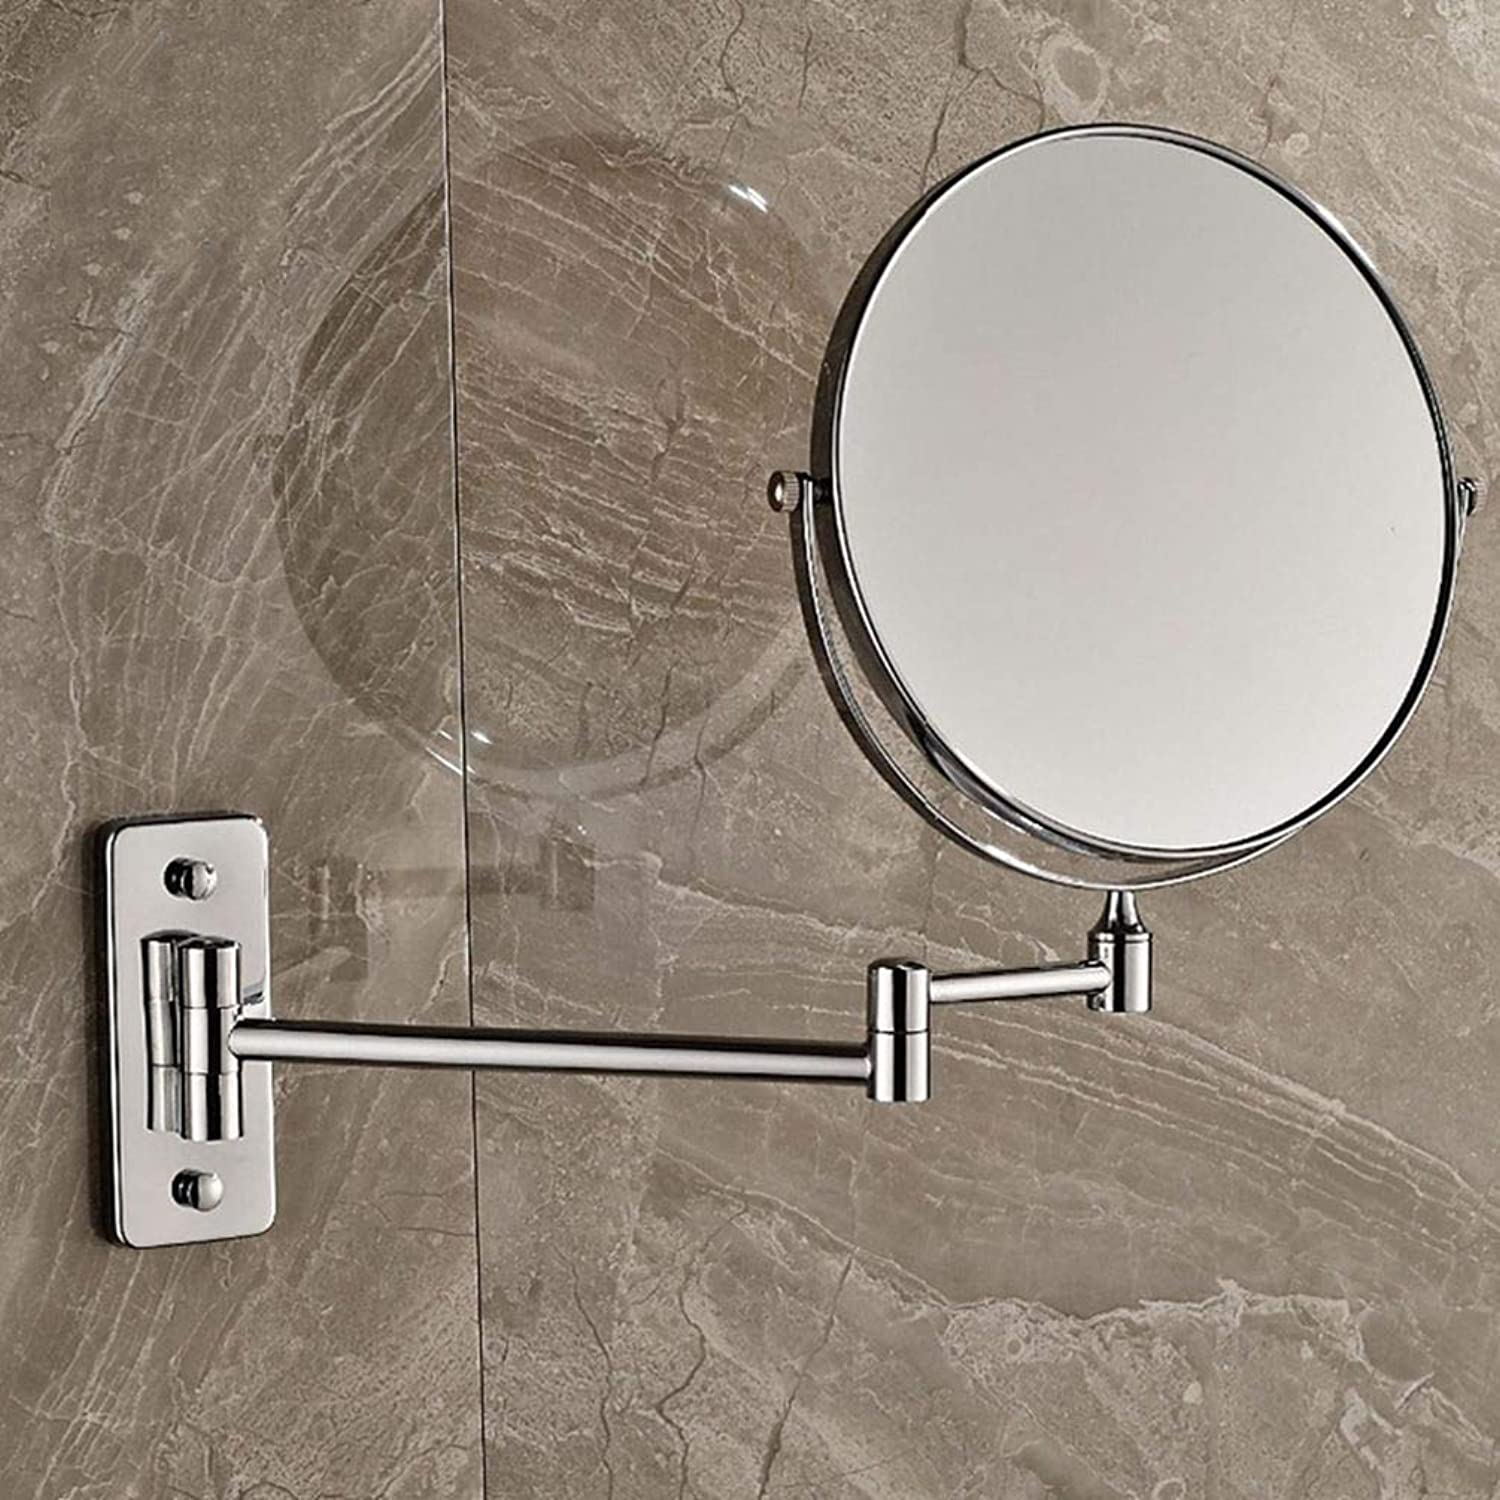 LUDSUY Wall Mounted Chrome 8'' Mirror Makeup Mirror Dual Sides Round Mirror Magnifying MirrorBathroom Accessories